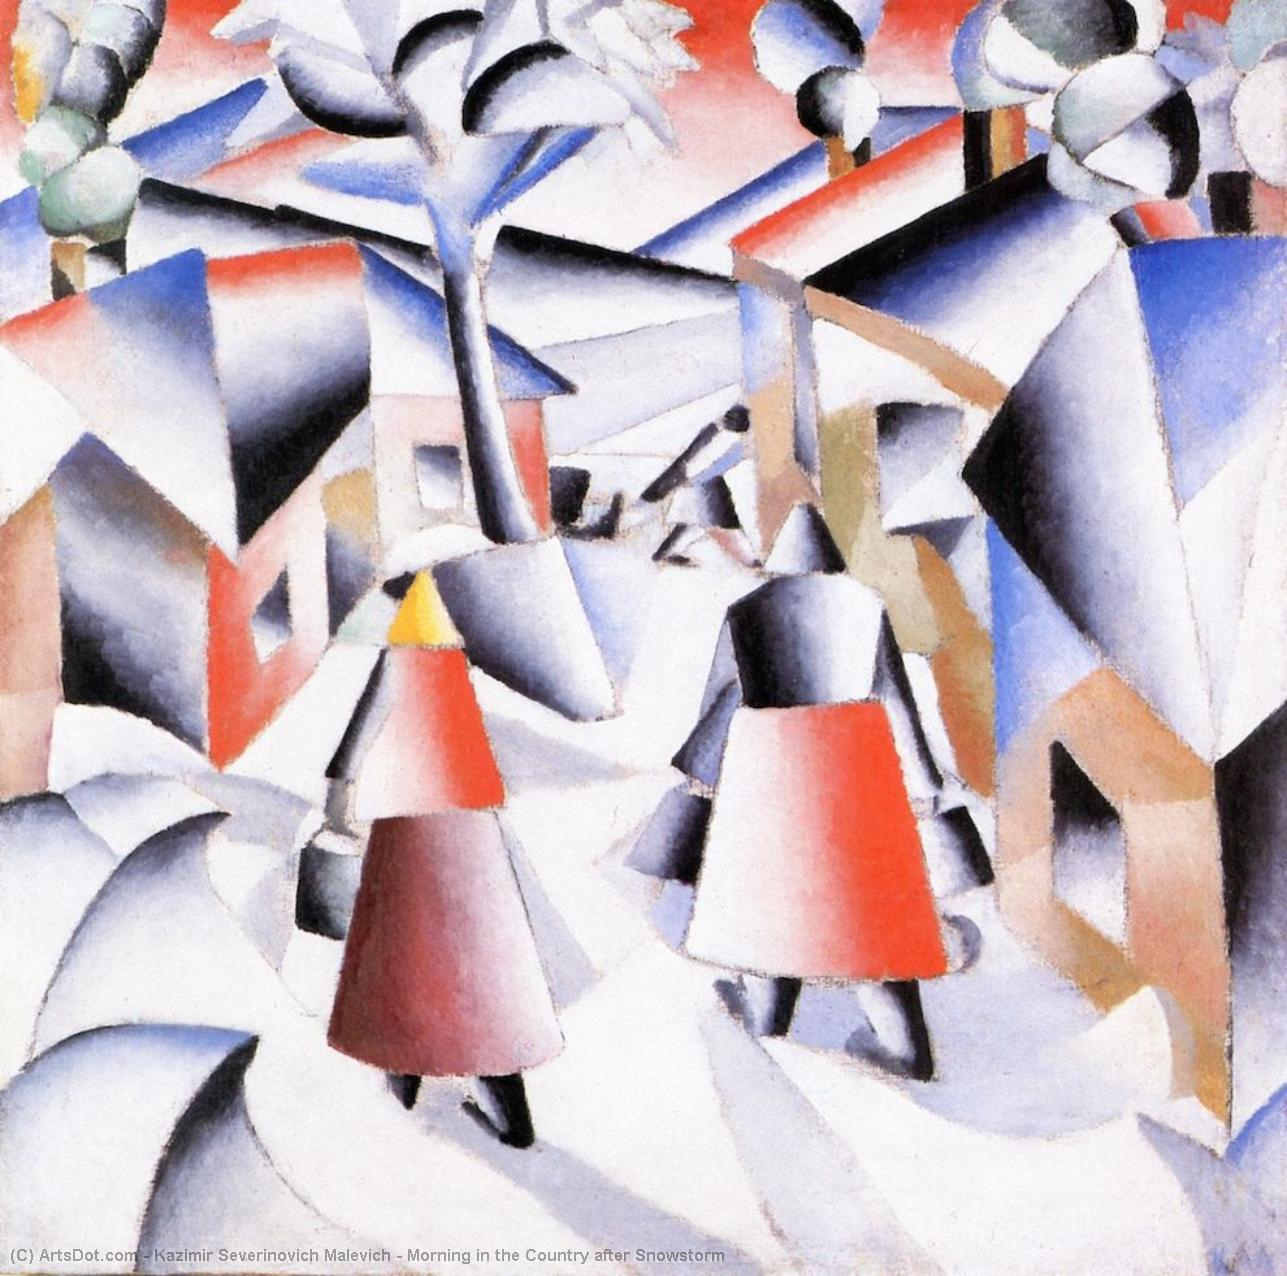 Morning in the Country after Snowstorm by Kazimir Severinovich Malevich (1879-1935, Ukraine) | Art Reproduction | ArtsDot.com